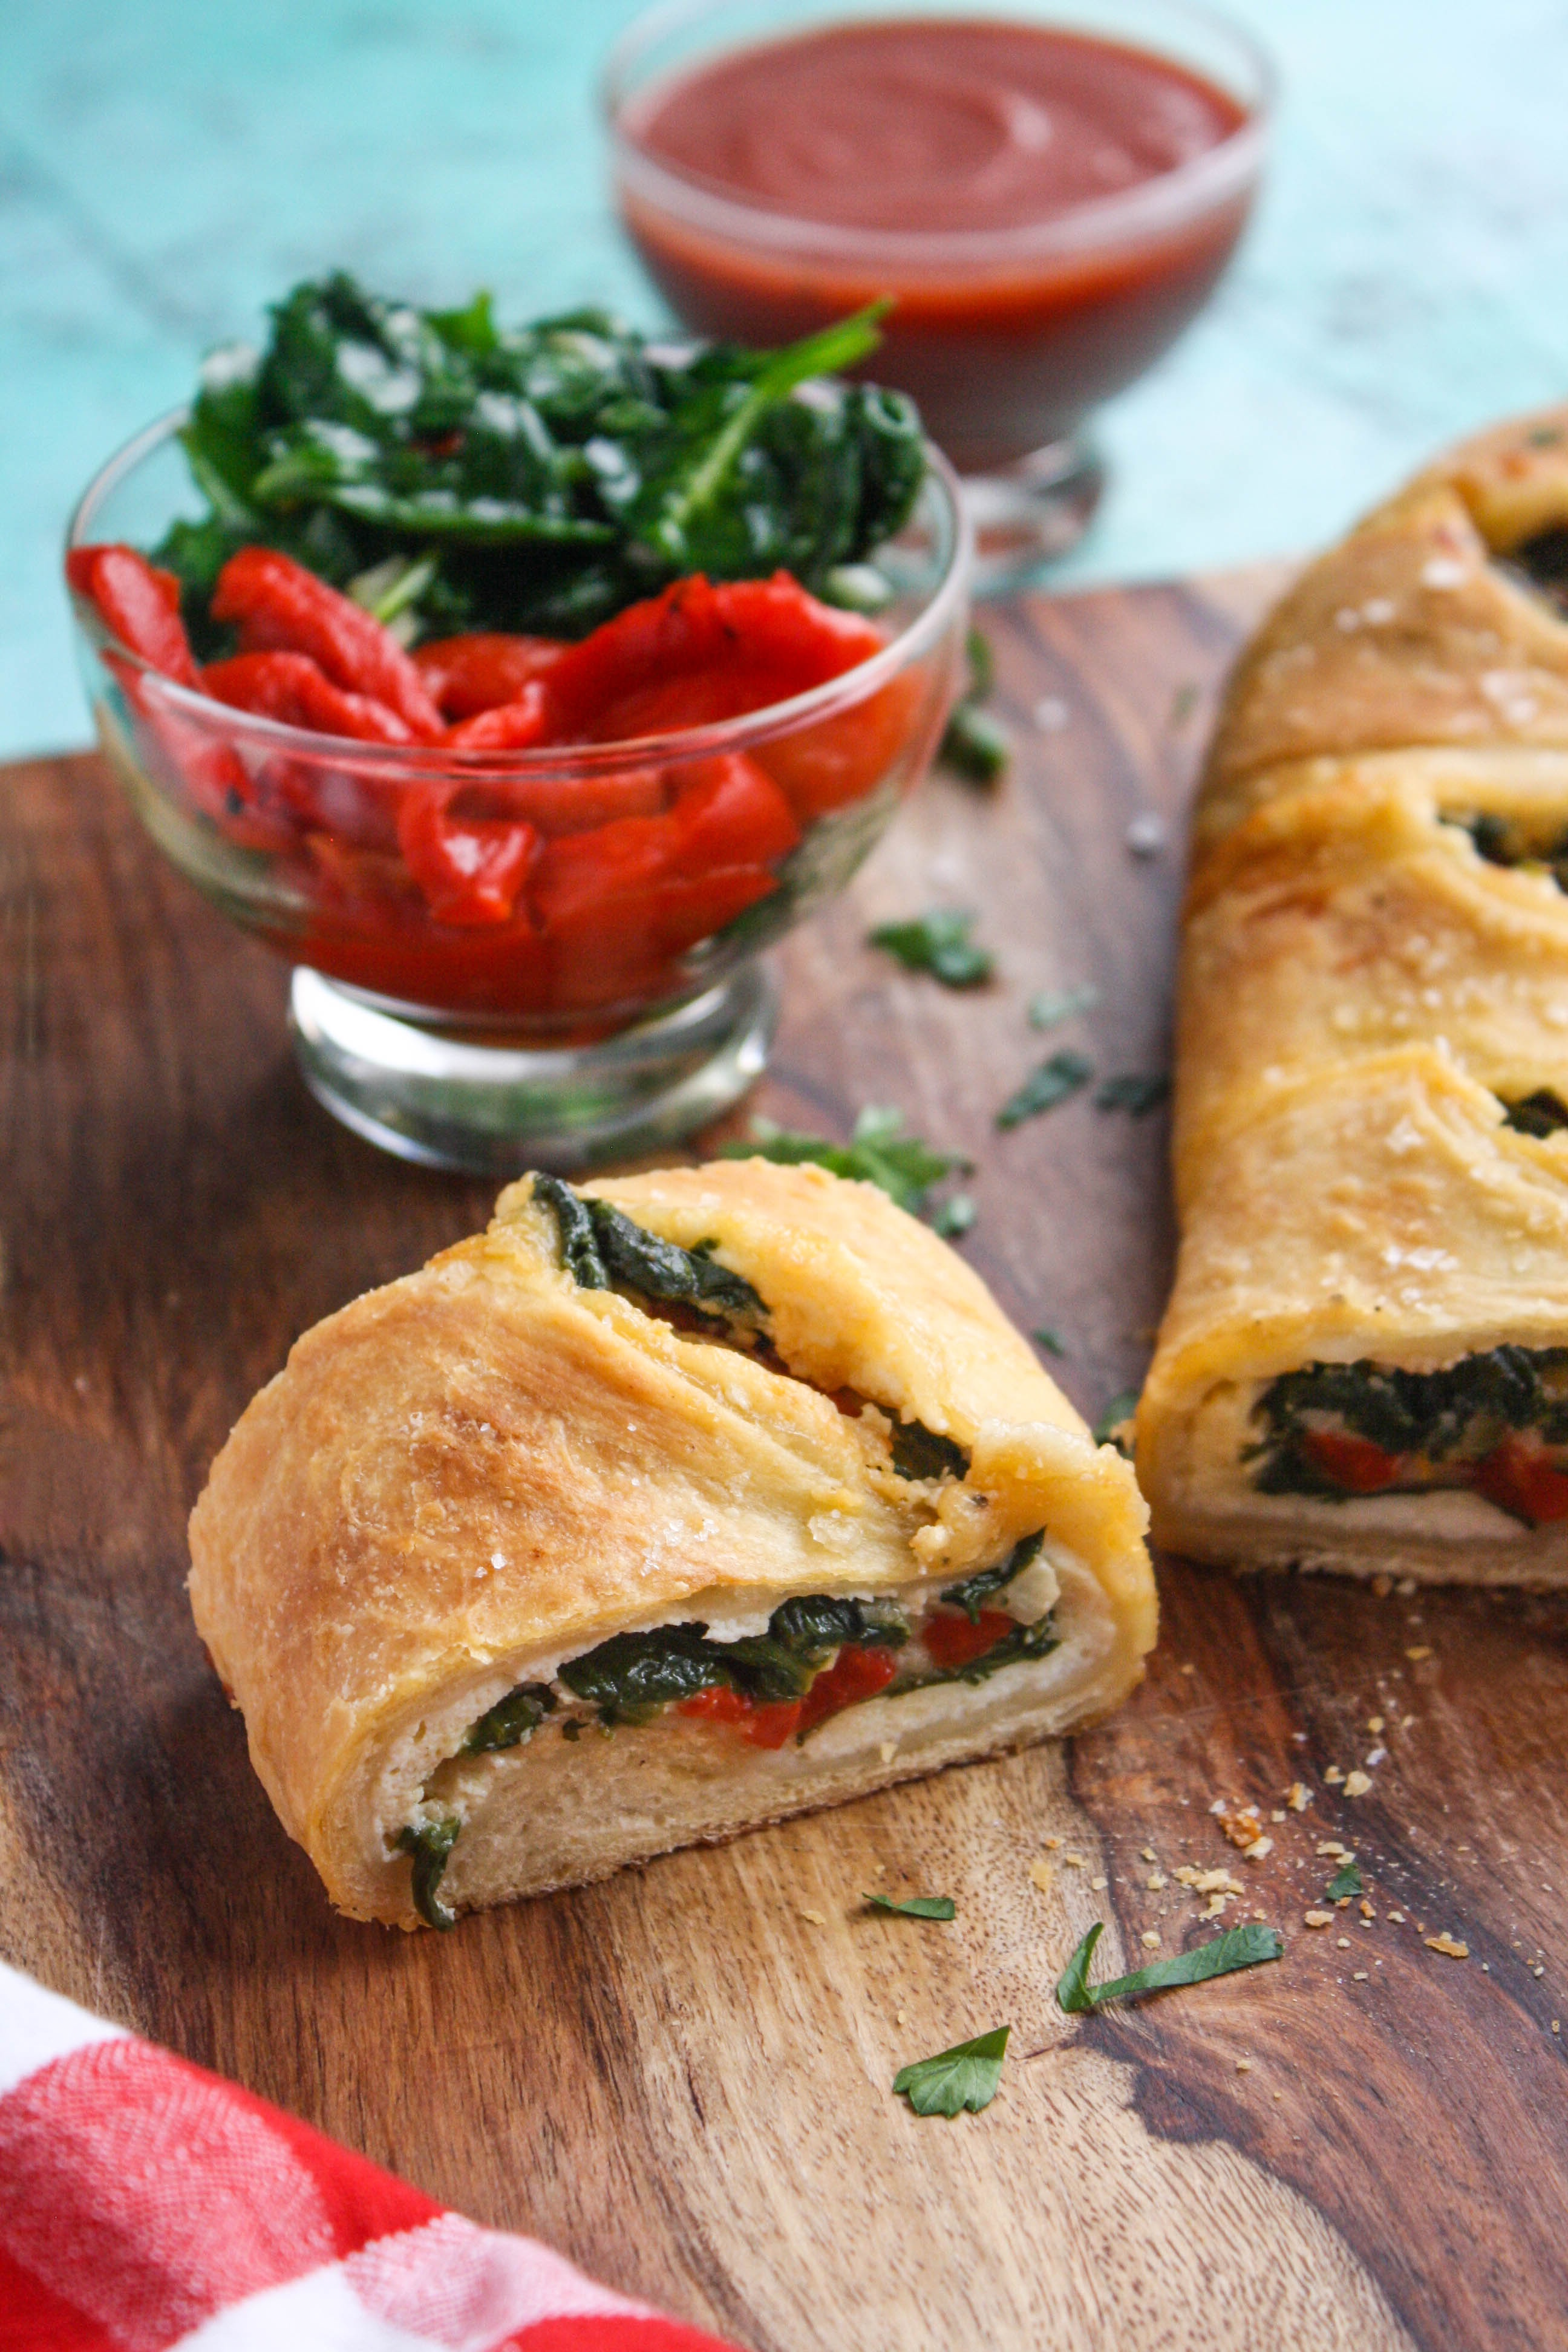 Spinach and Roasted Red Pepper Stromboli is a delightful pizza-like treat. Stromboli is an easy-to-make dish for any night of the week!